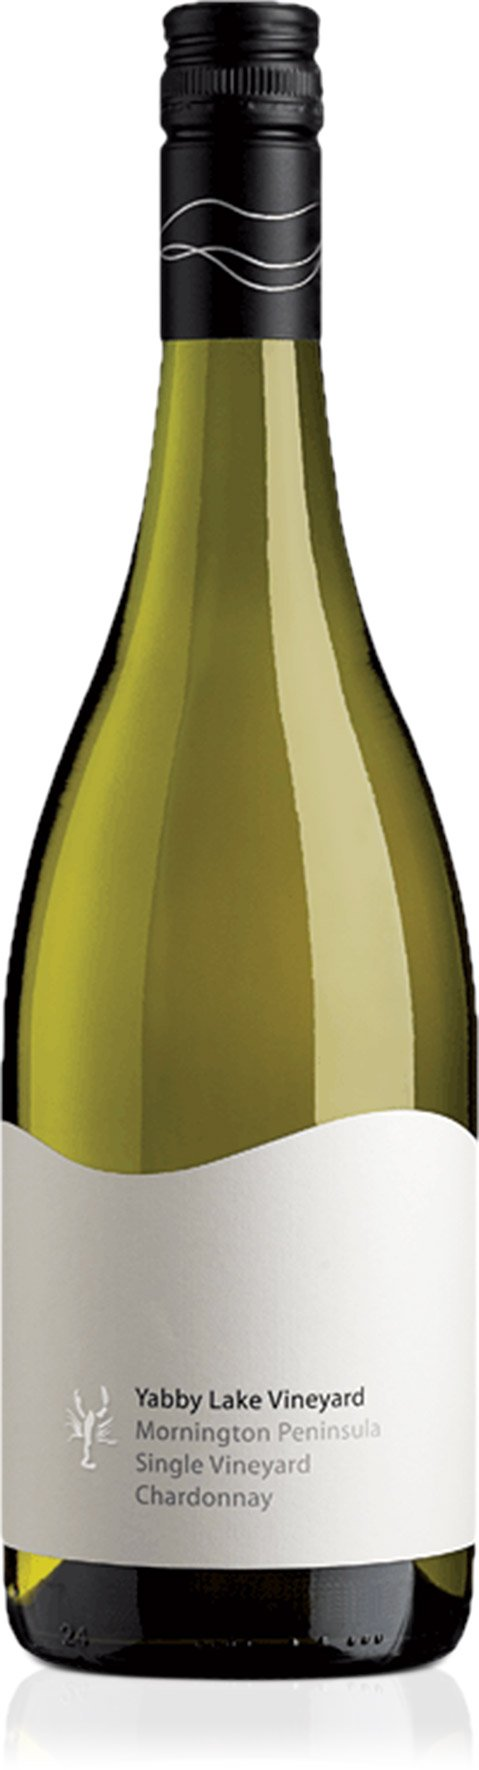 Yabby Lake-2018 Yabby Lake Chardonnay-Pubble Alcohol Delivery